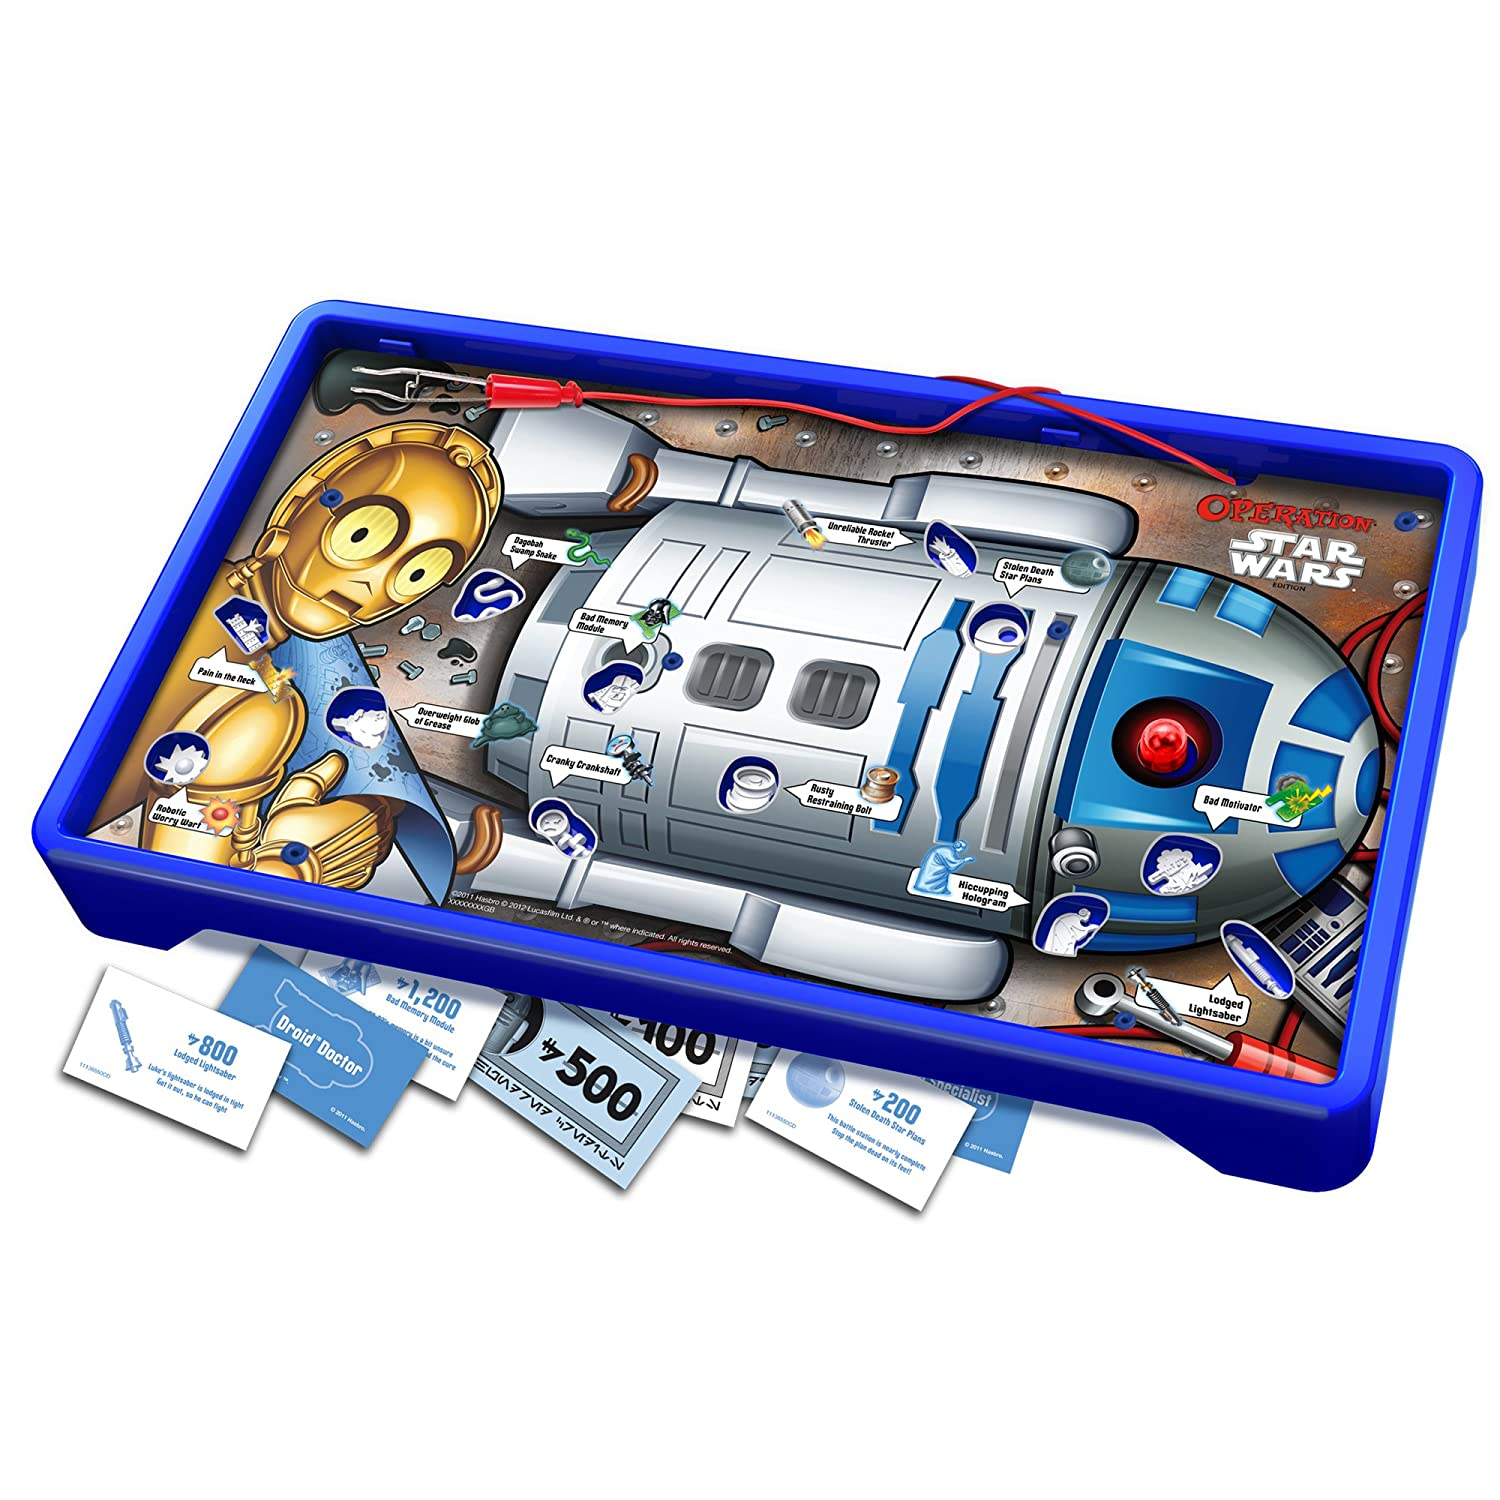 The game Operation Star Wars Style - on R2 D2!